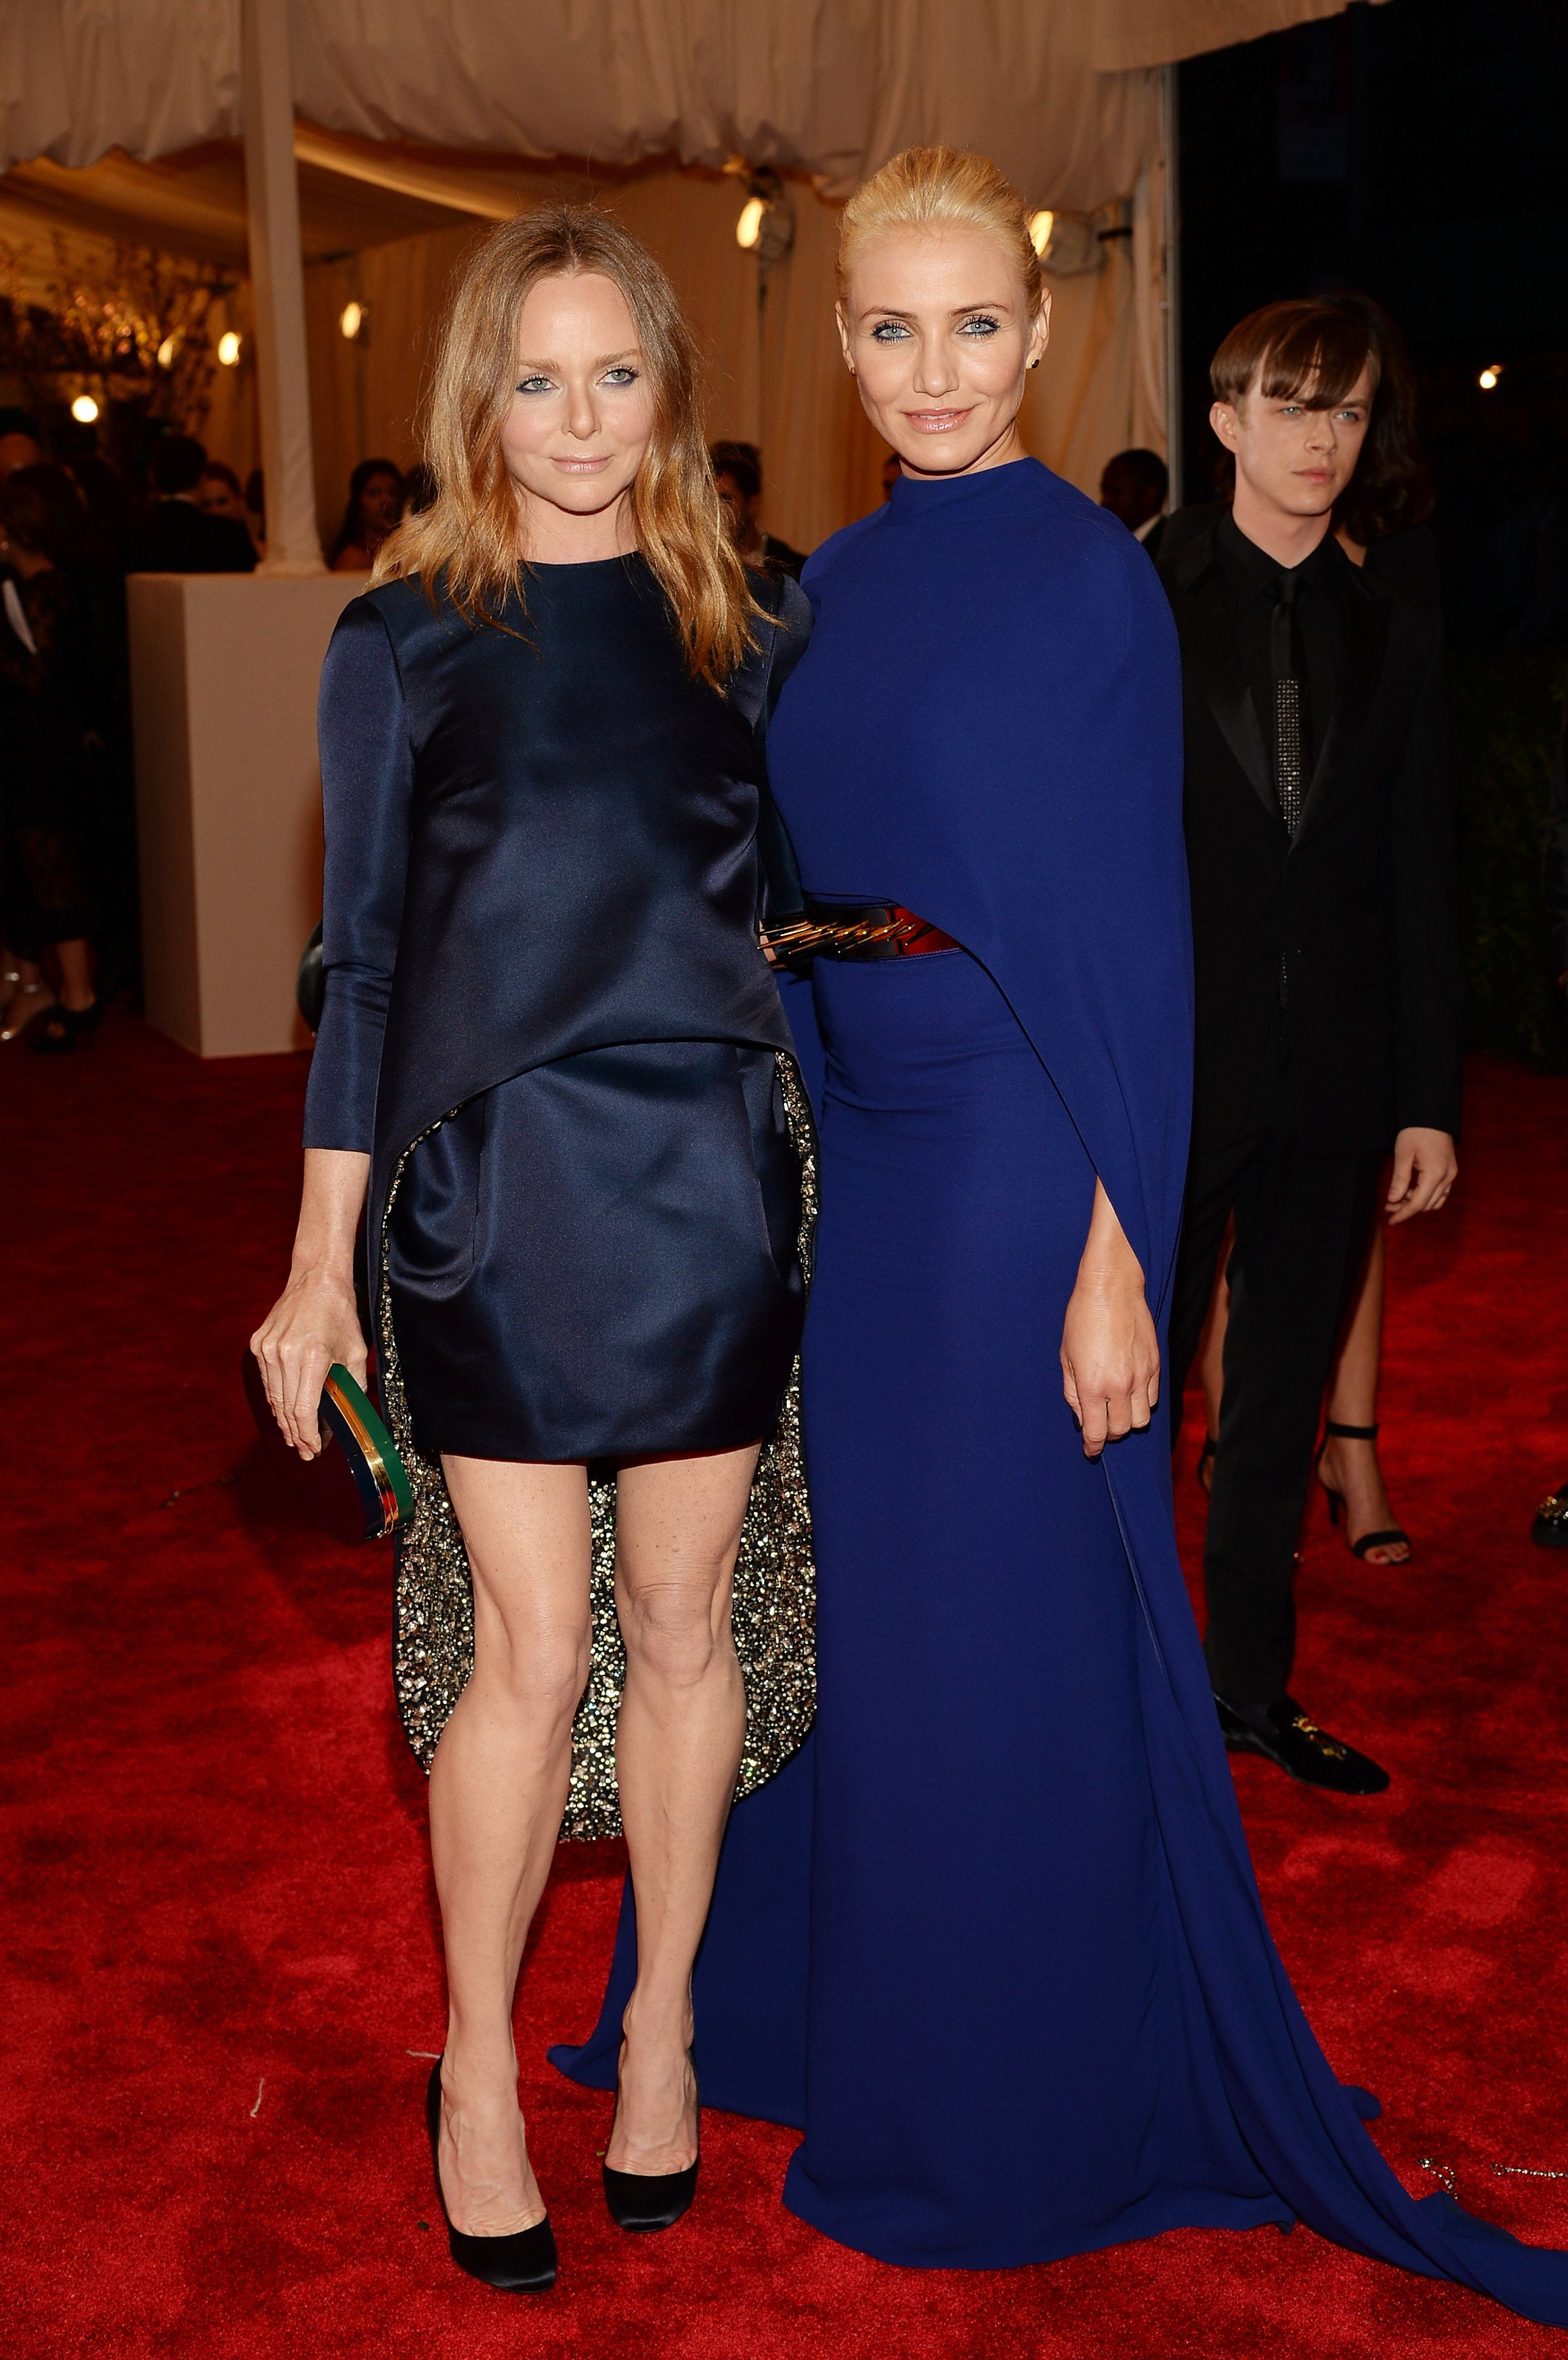 Stella McCartney at the Met Gala in our navy blue satin top with diamond embroidered lining, mini skirt and high heel pumps with green/crème plexi oval clutch.    Cameron Diaz in our blue crepe gown with cape, gold spiked belt, platform stud sandals and wooden box clutch.